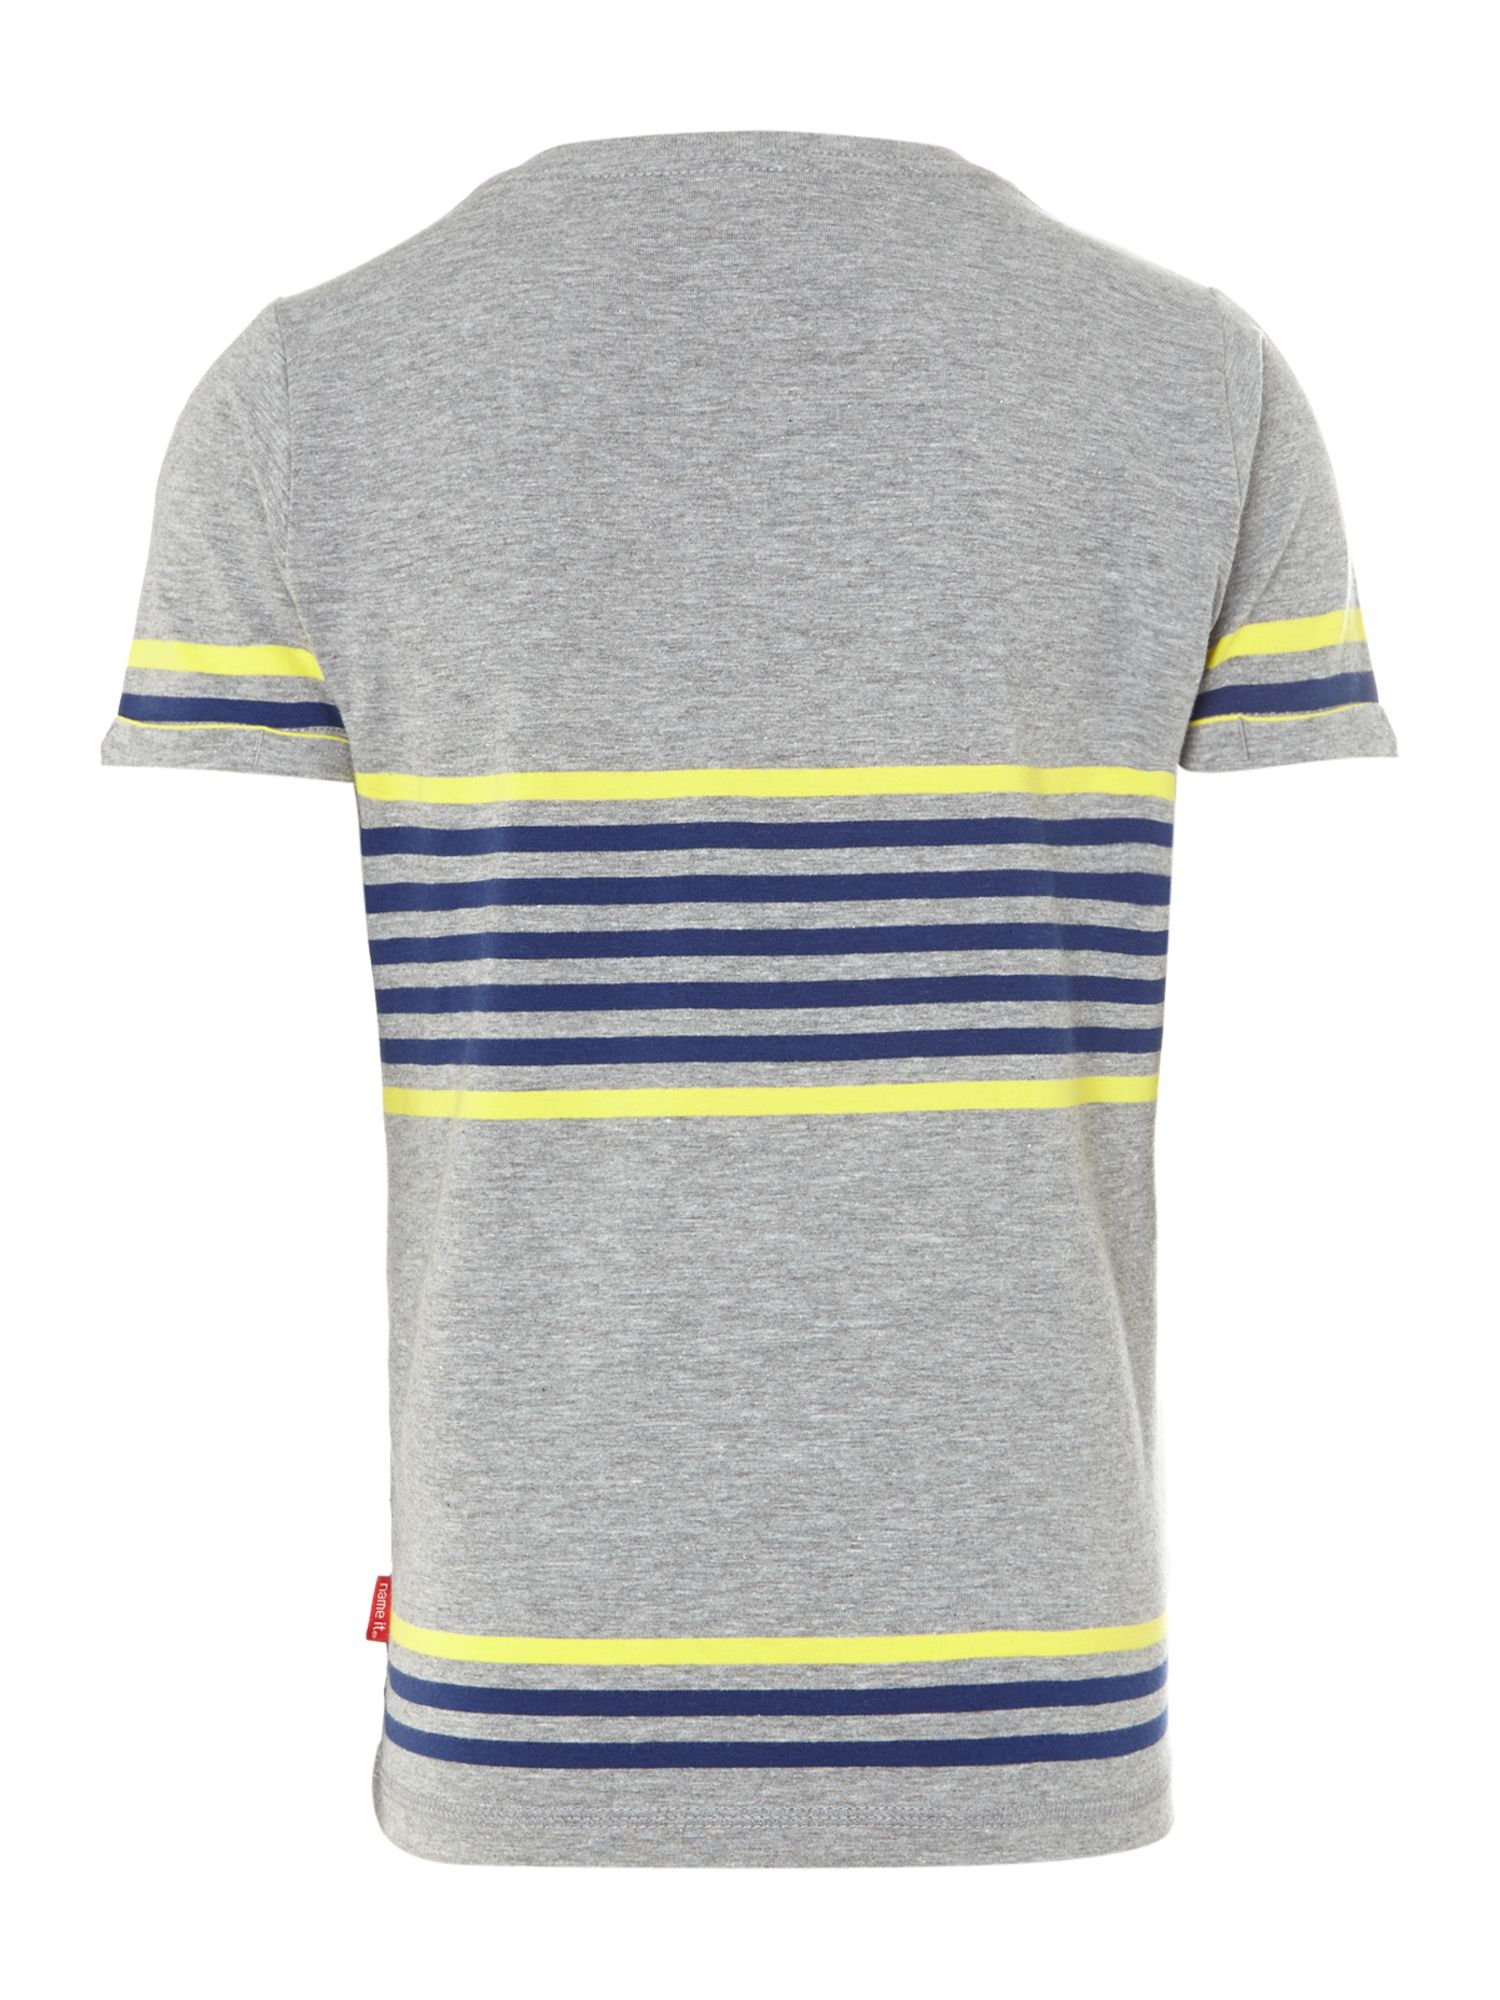 Boys contrast stripe t-shirt